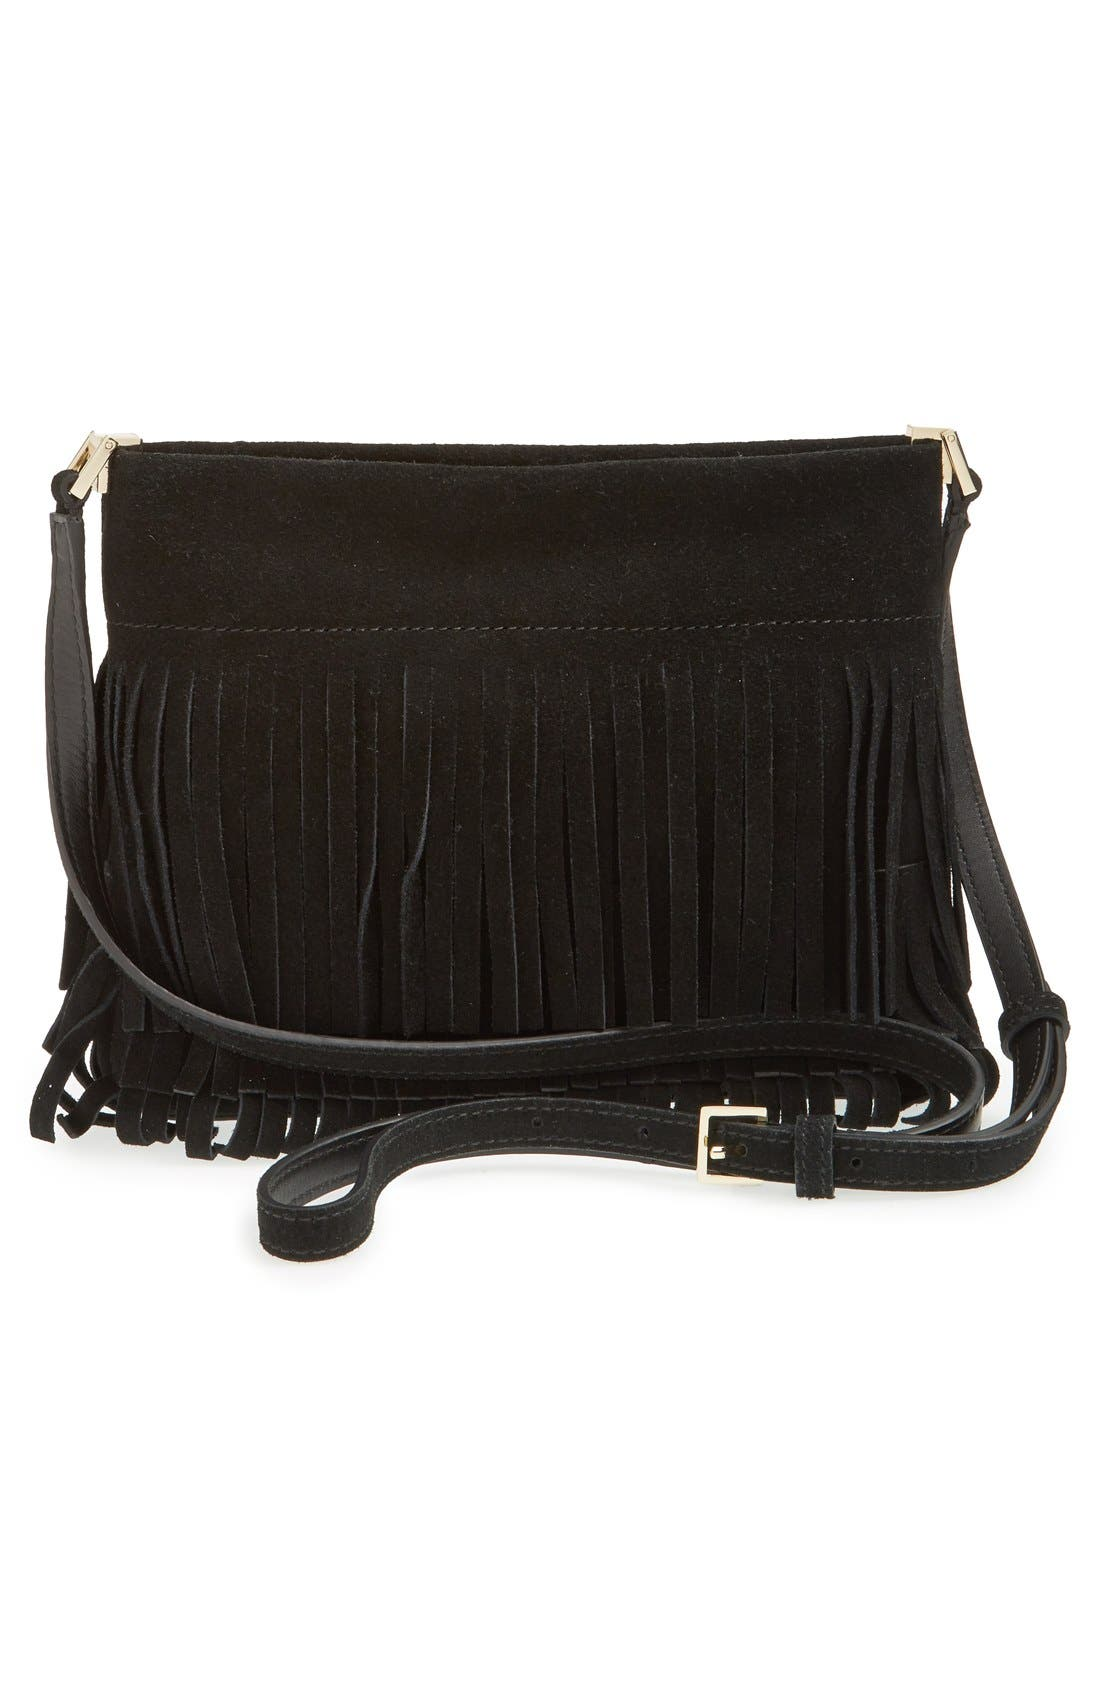 Alternate Image 3  - kate spade new york 'sycamore run - cristi' suede fringe crossbody bag